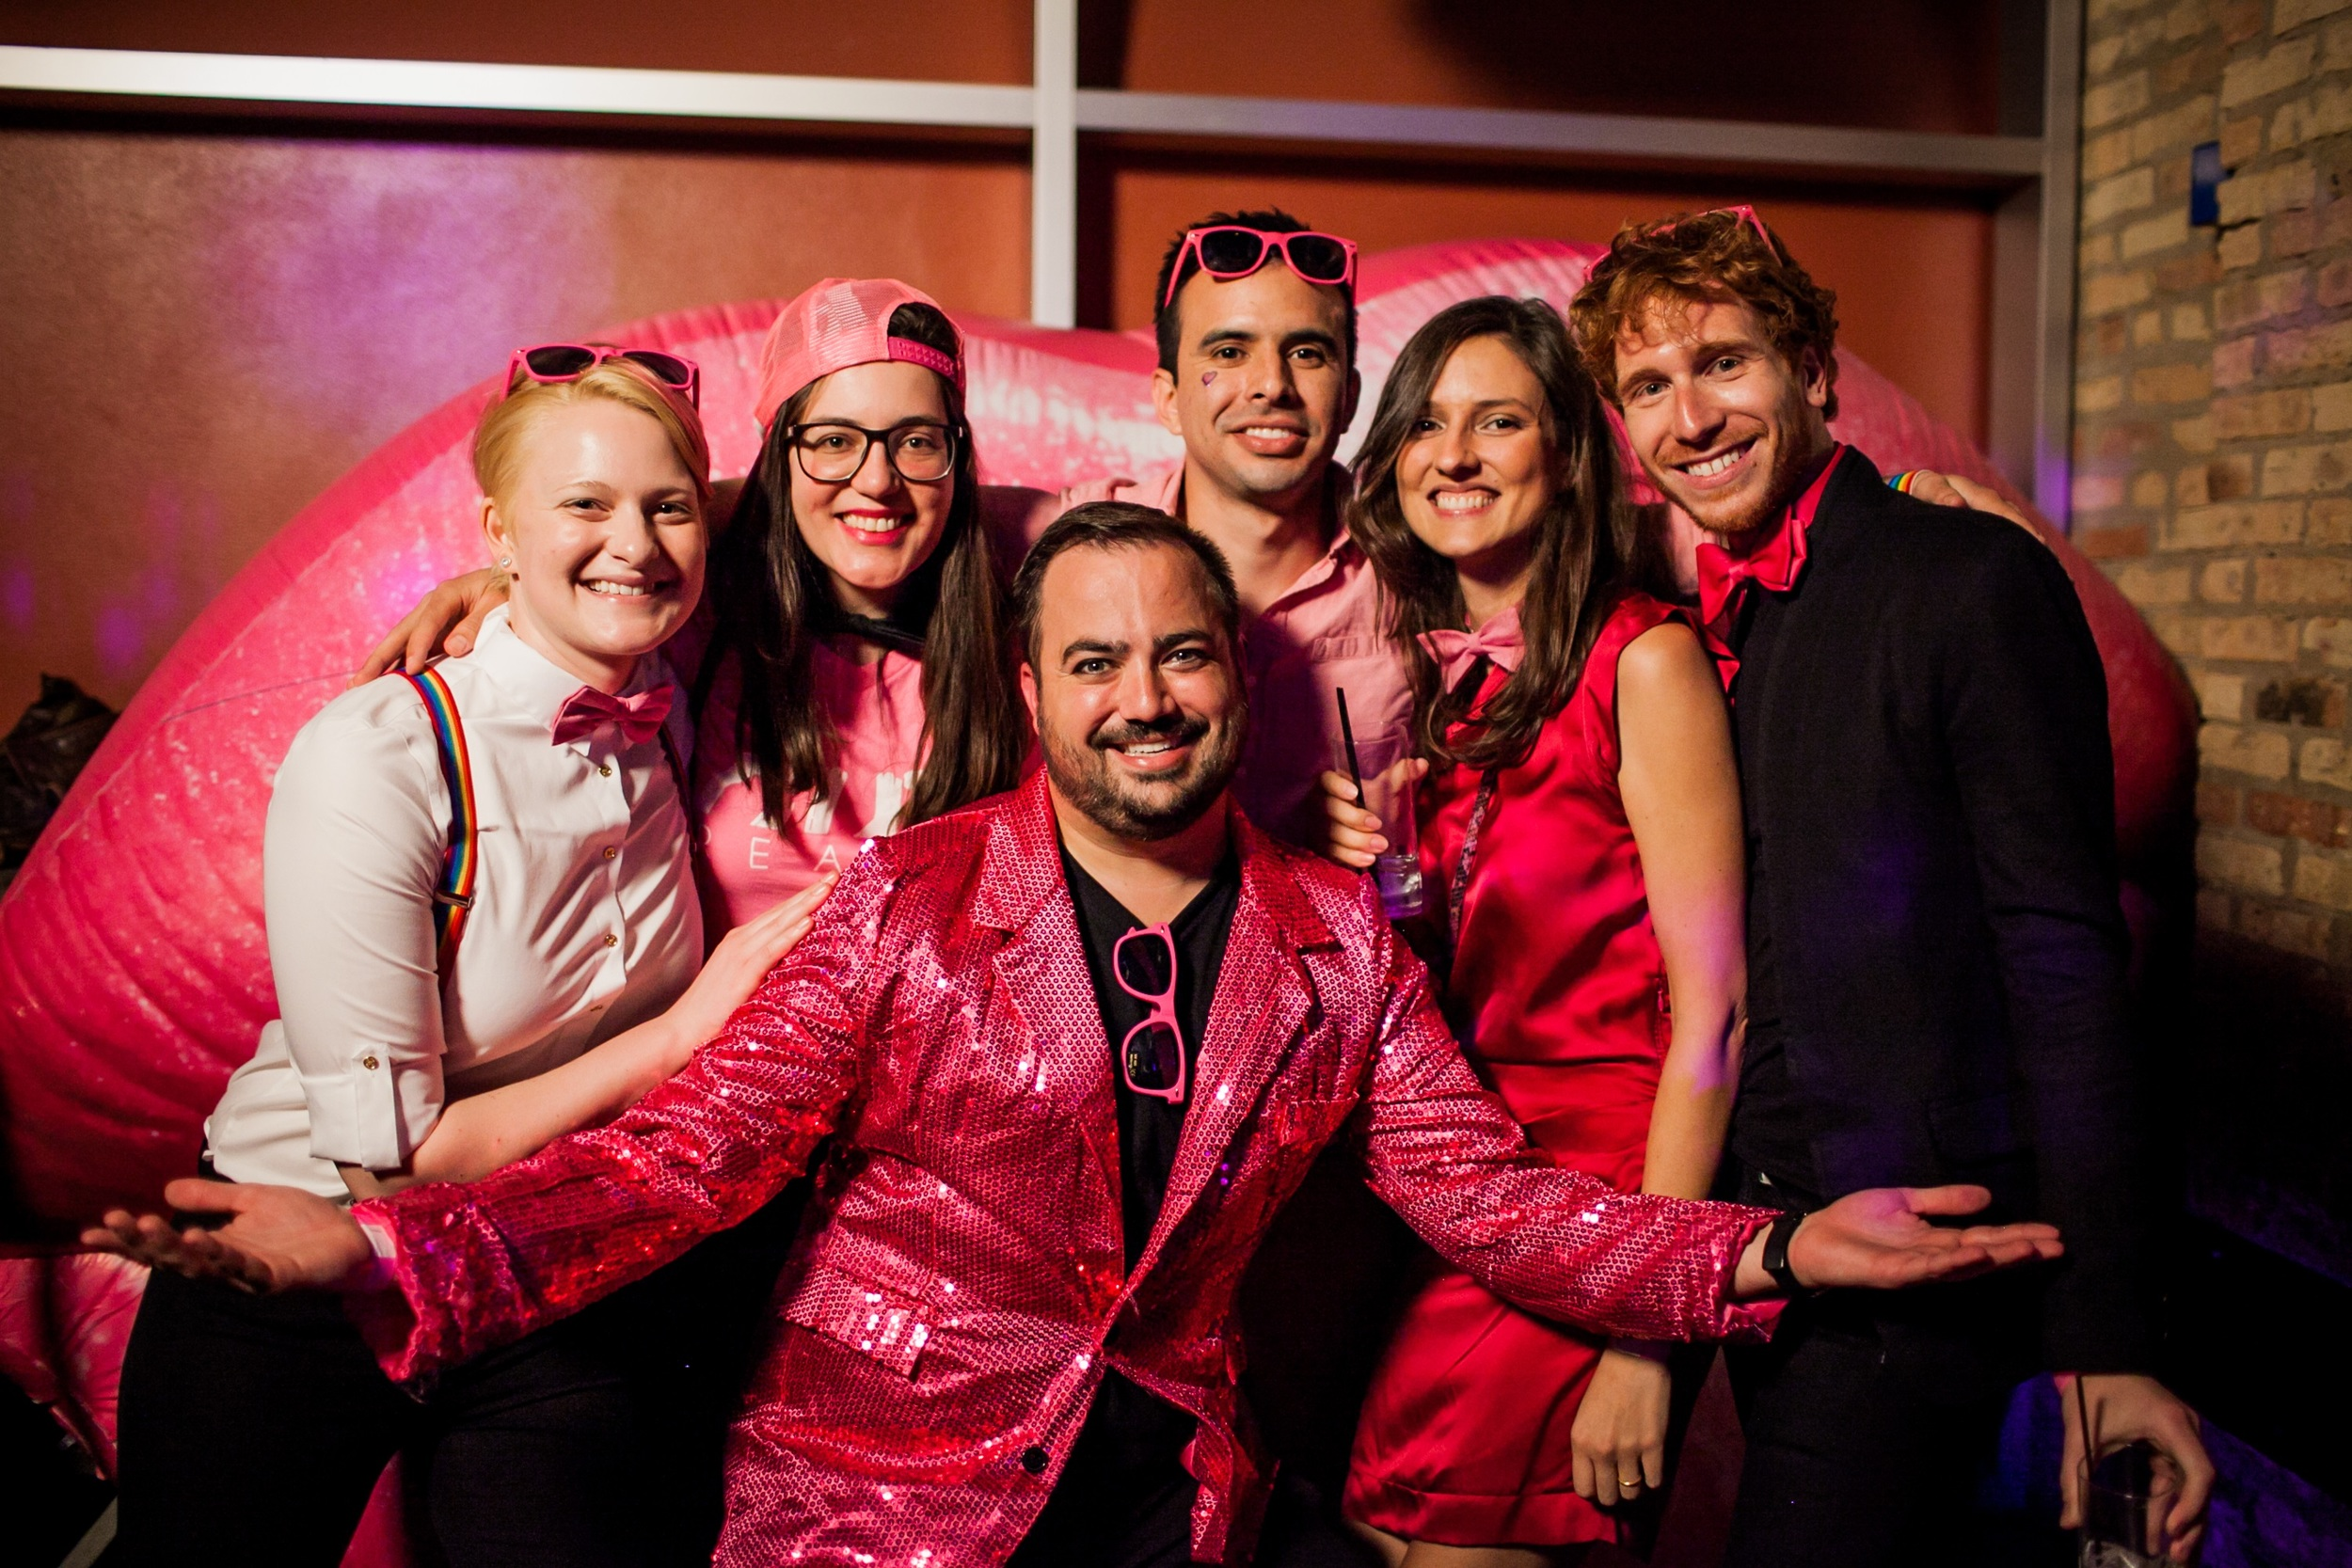 Booth OUTreach co-chair and project leader, Erik Underwood (center), strikes a pose with his fellow co-chairs in front of the signature pink lips at OUTreach's annual #PinkParty at Sidetrack Video Bar in Boystown.